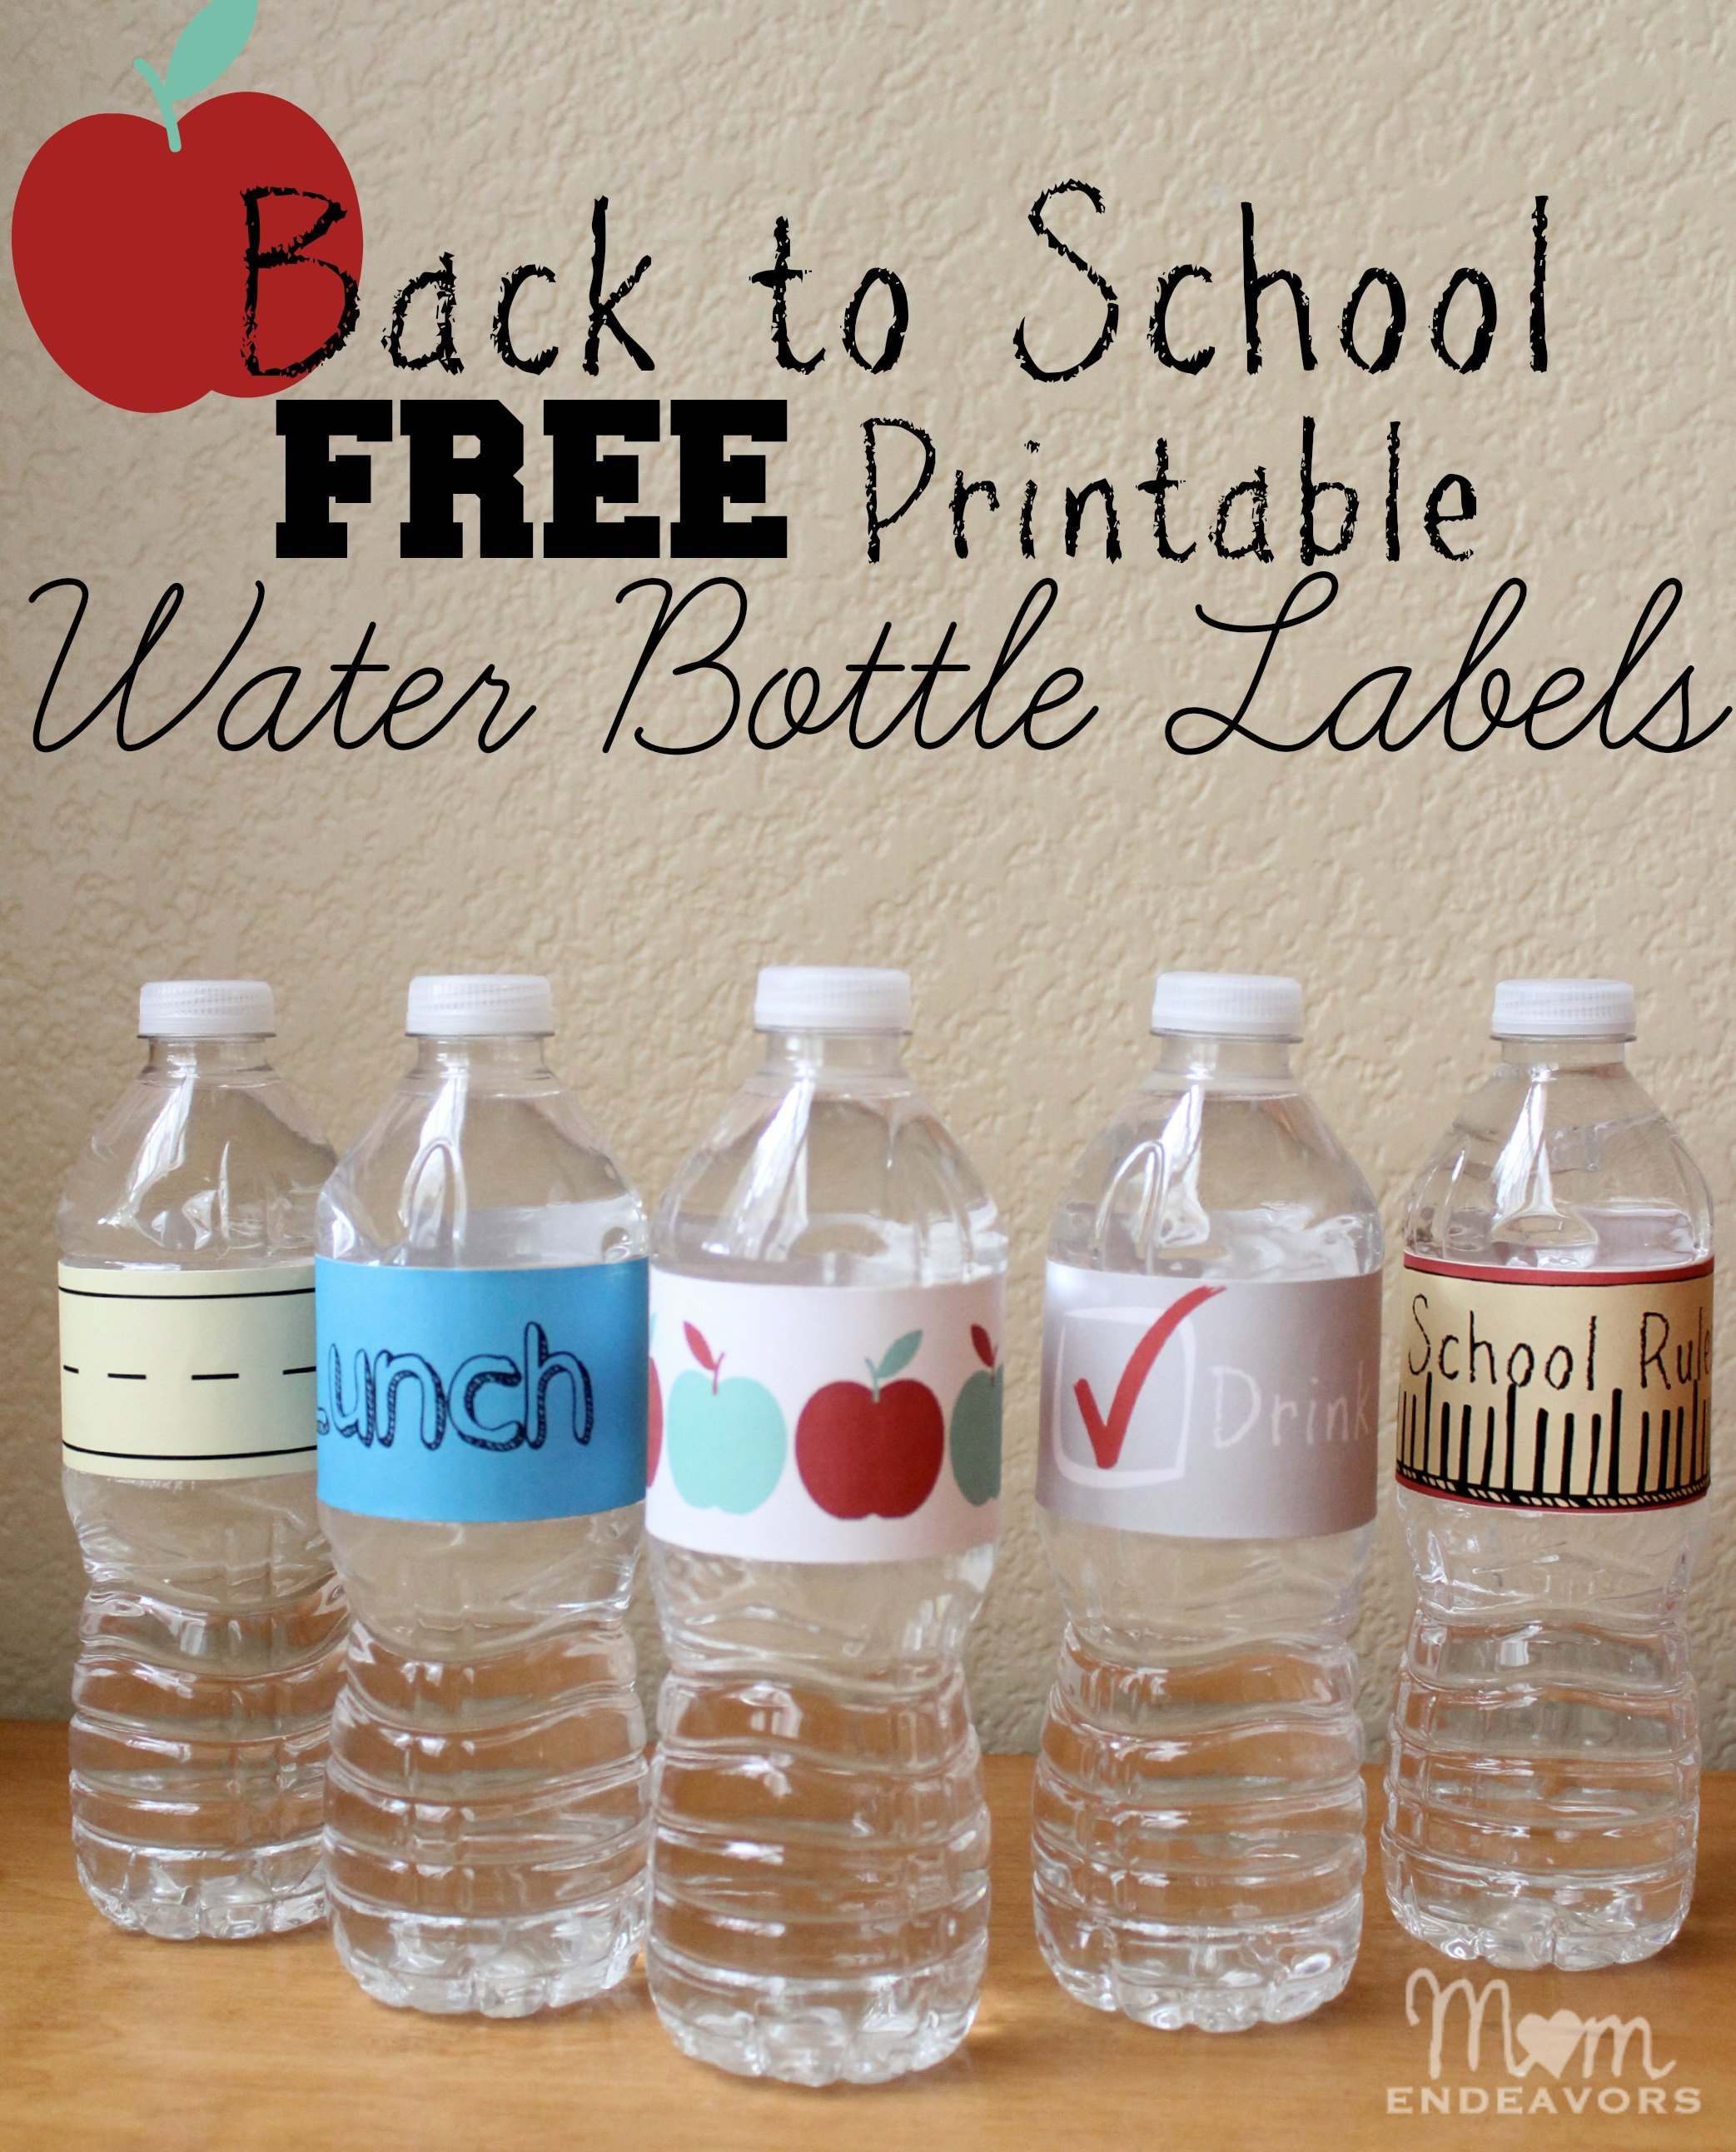 Printable Water Bottle Labels Convenient & Fun Drinks for Back to School Lunches with